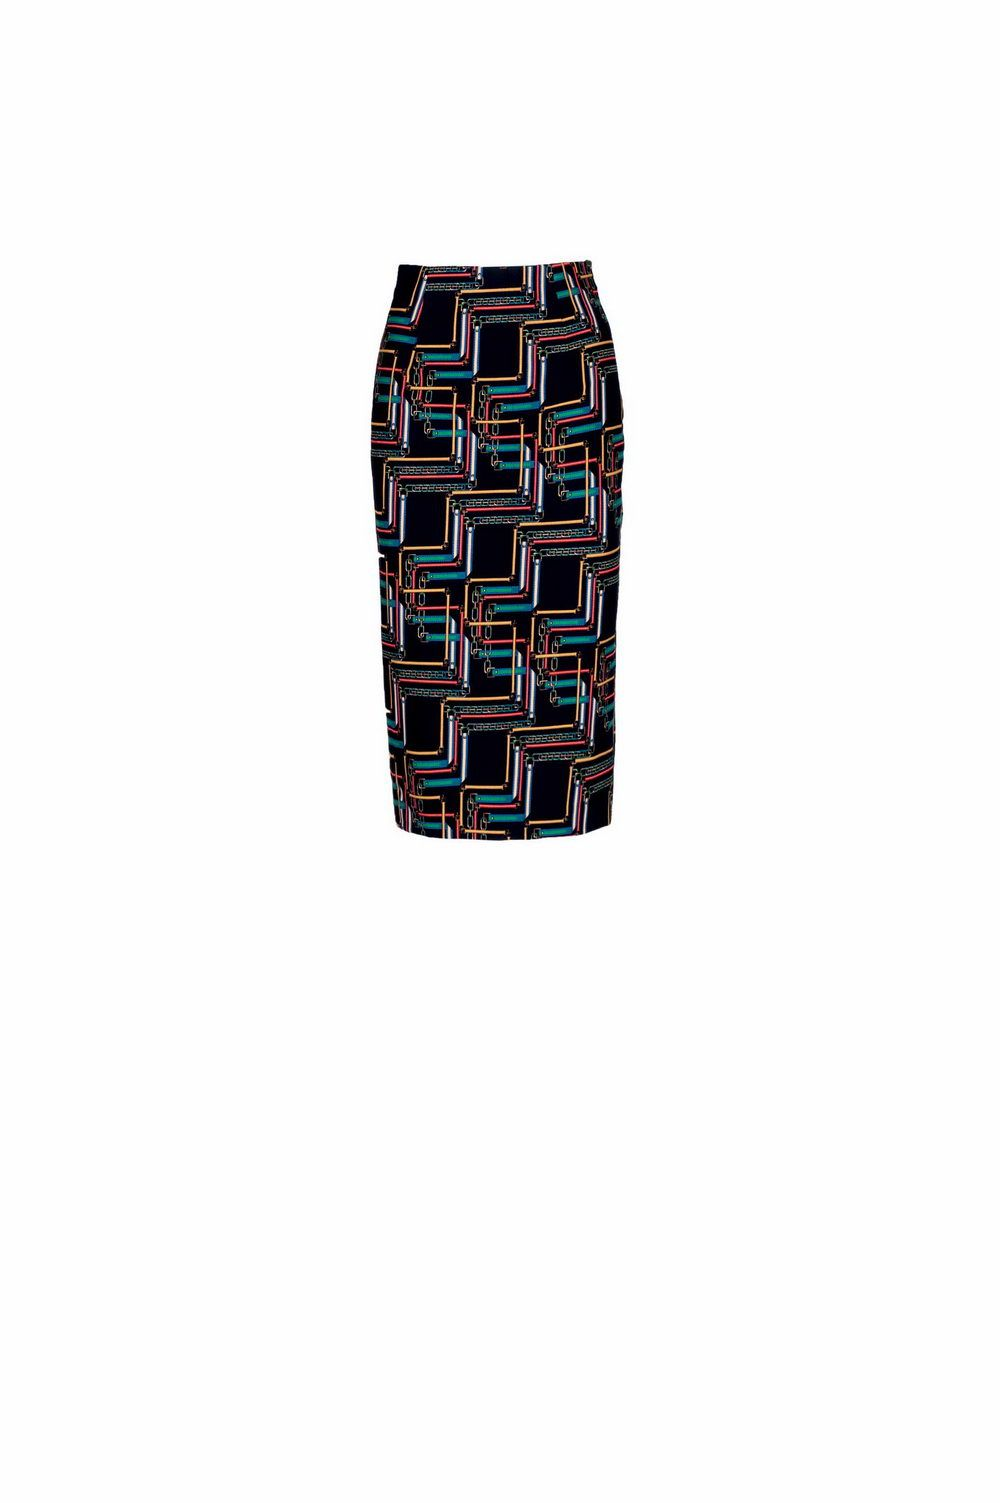 AnonymeDesigners_R139FS053 - Skirt - PVP 94,20€_resize